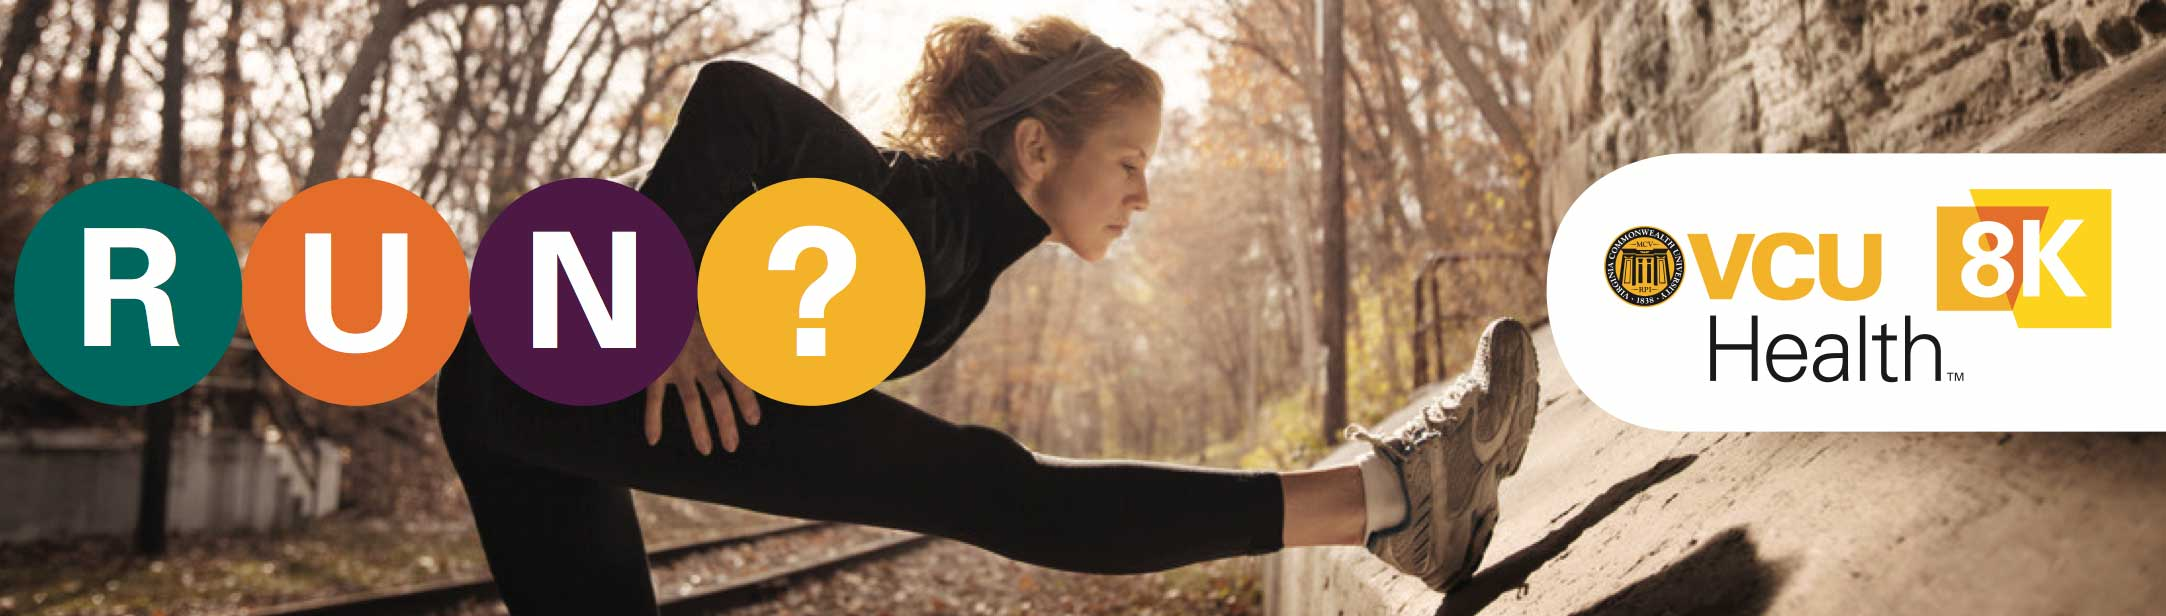 a woman is stretching along some railroad tracks